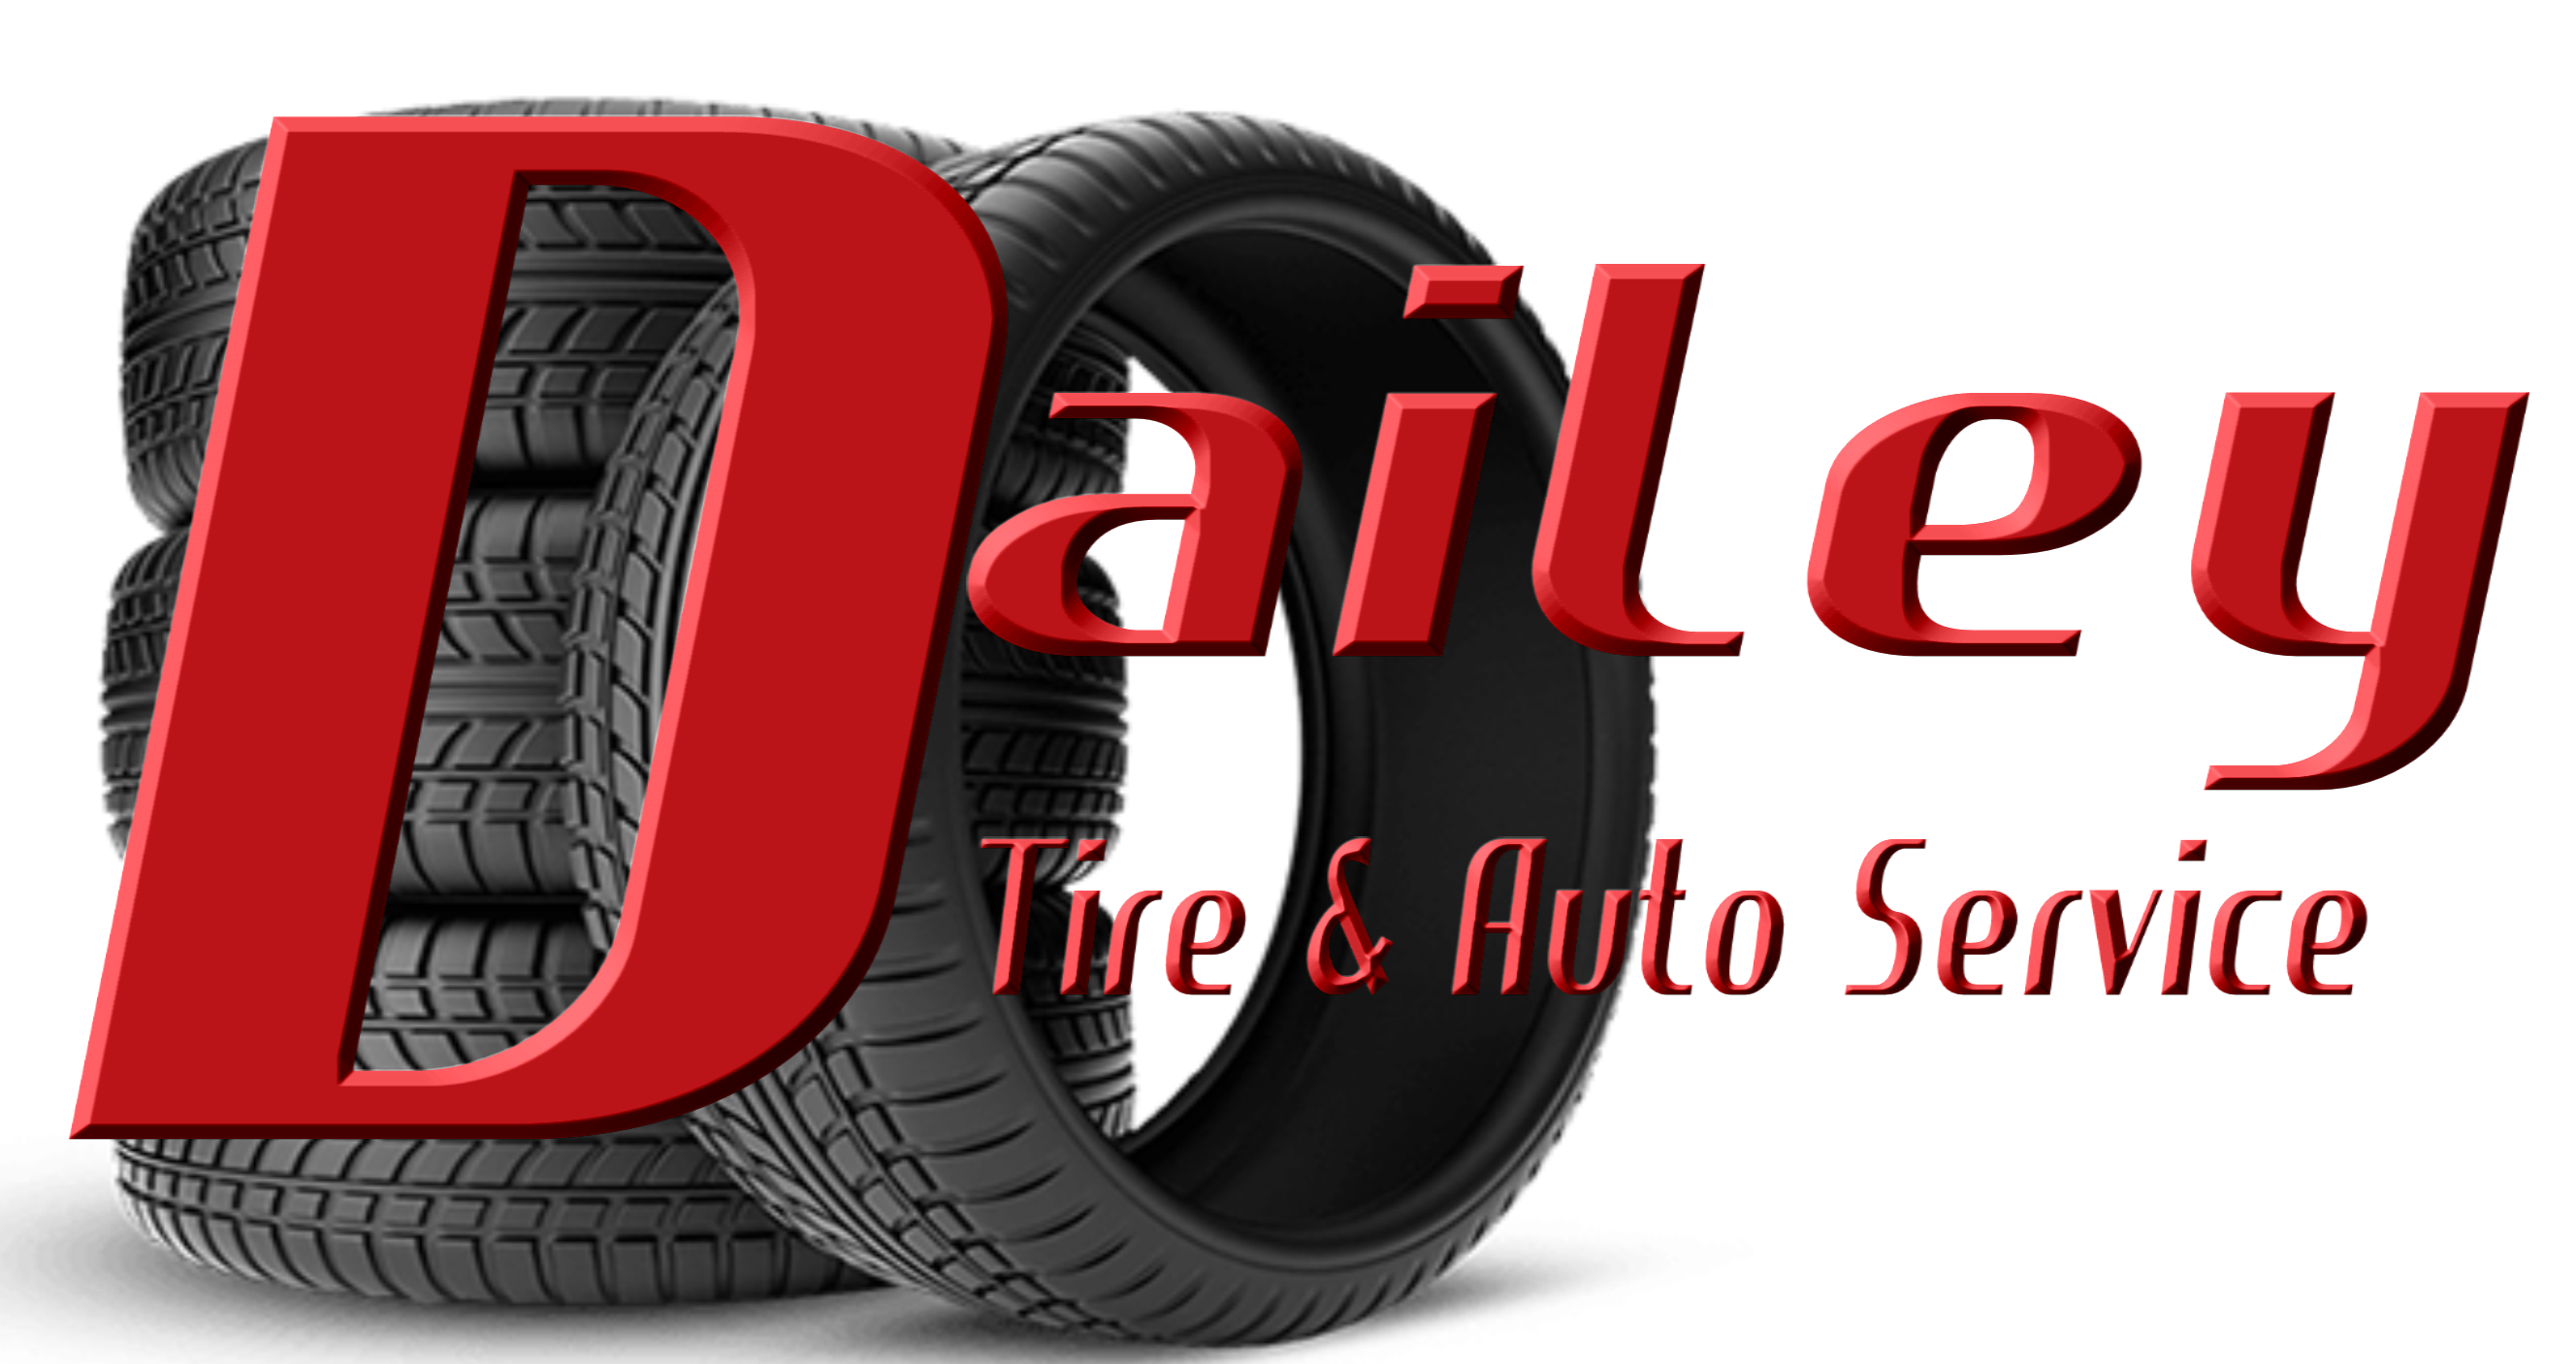 Dailey Tire & Auto Service